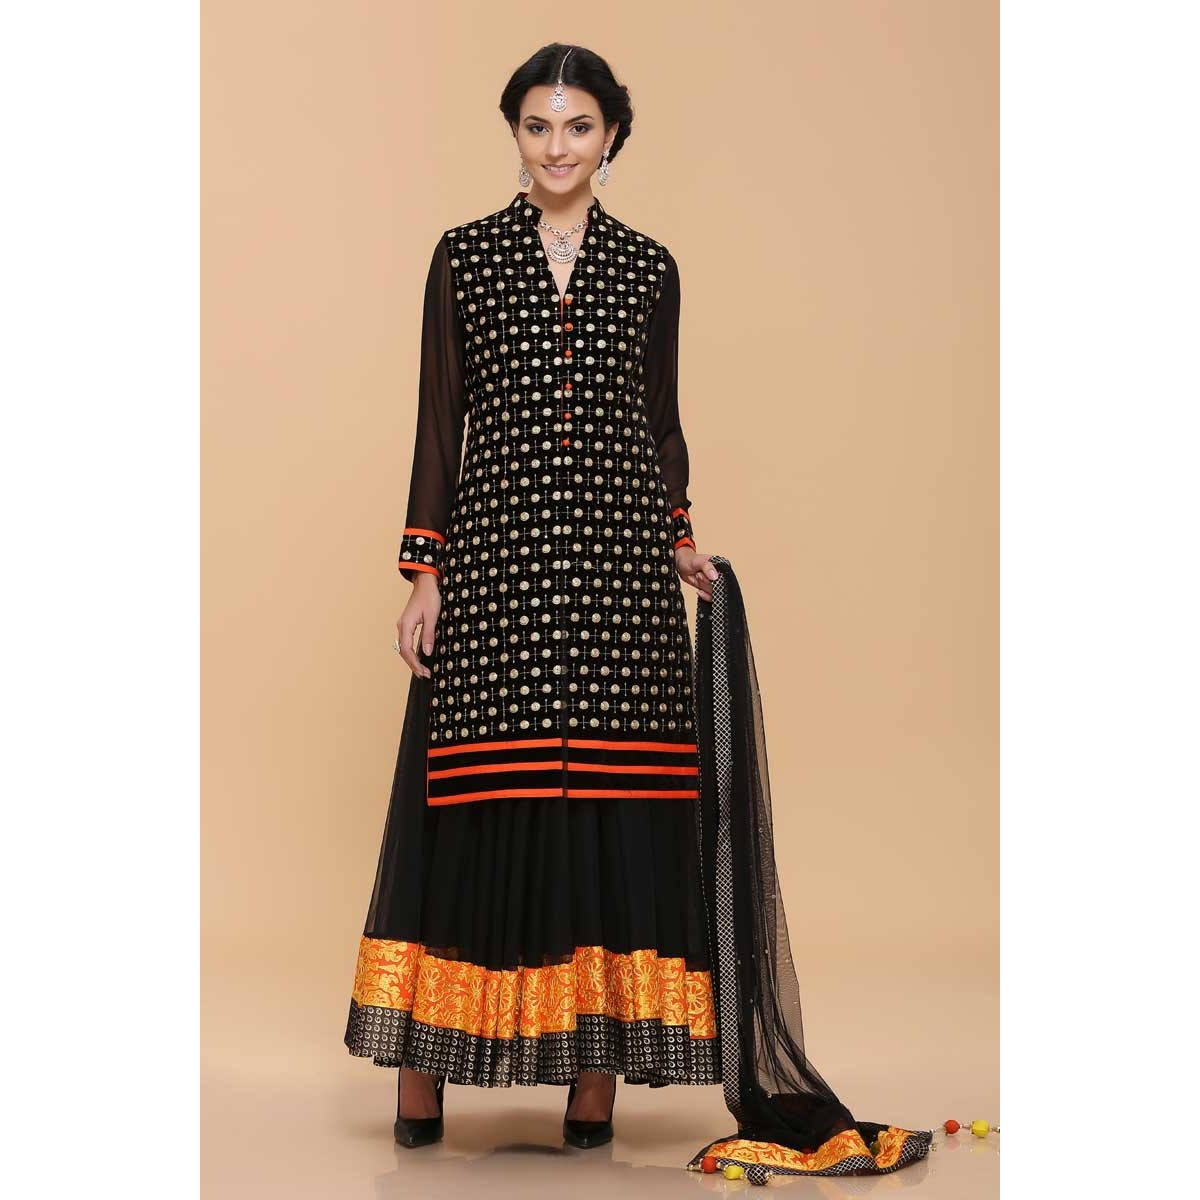 604bd9b66a Buy Black Net Lengha Suit Online - 1654 | Andaaz Fashion